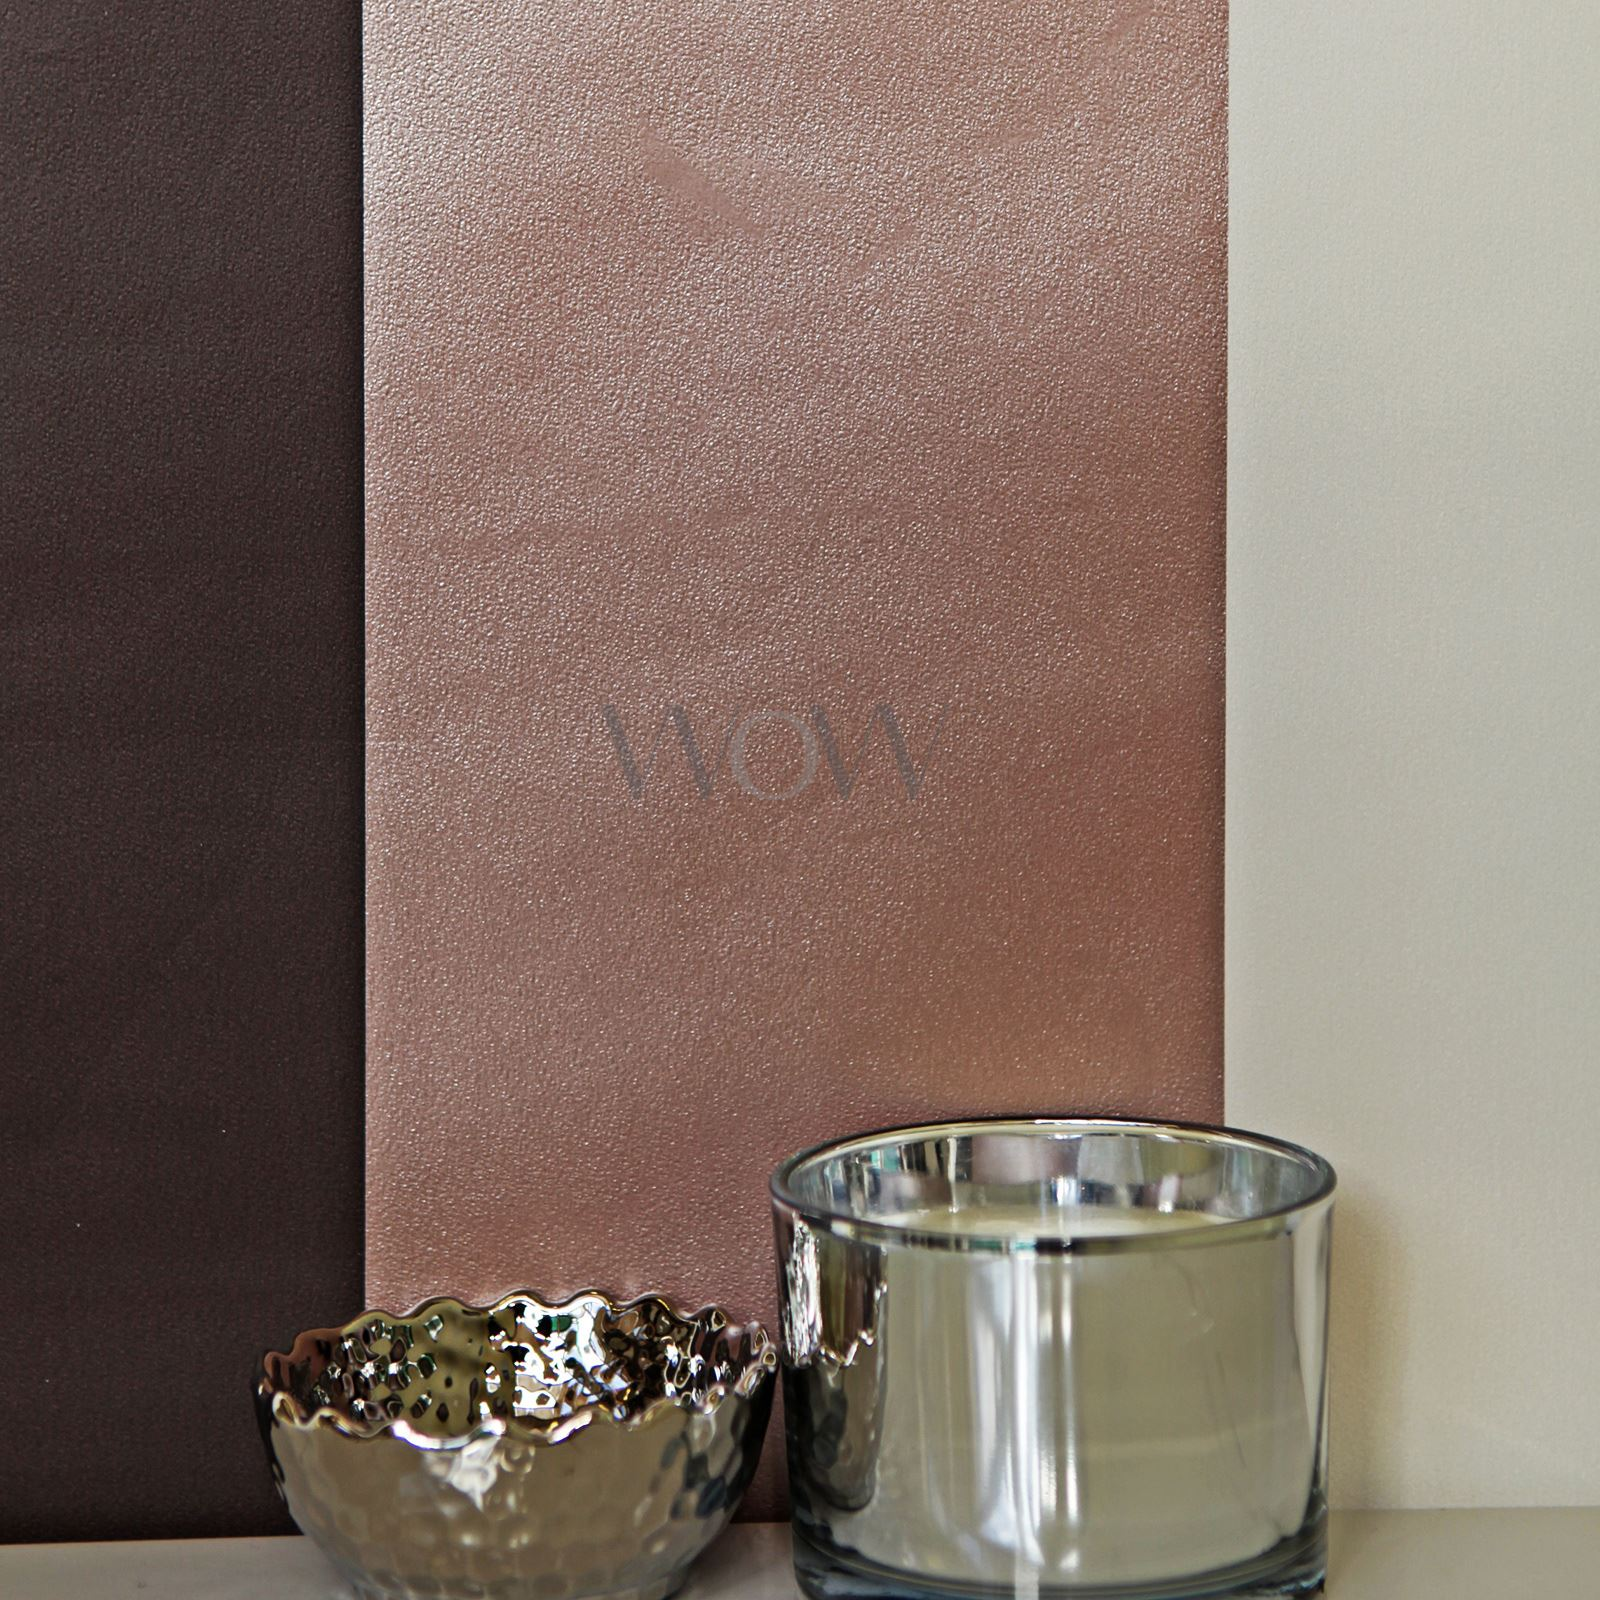 Great Wallpaper High Quality Rose Gold - e0bd4d07-f296-4a26-9b8c-6c06f02bc384  Picture_266843.jpg